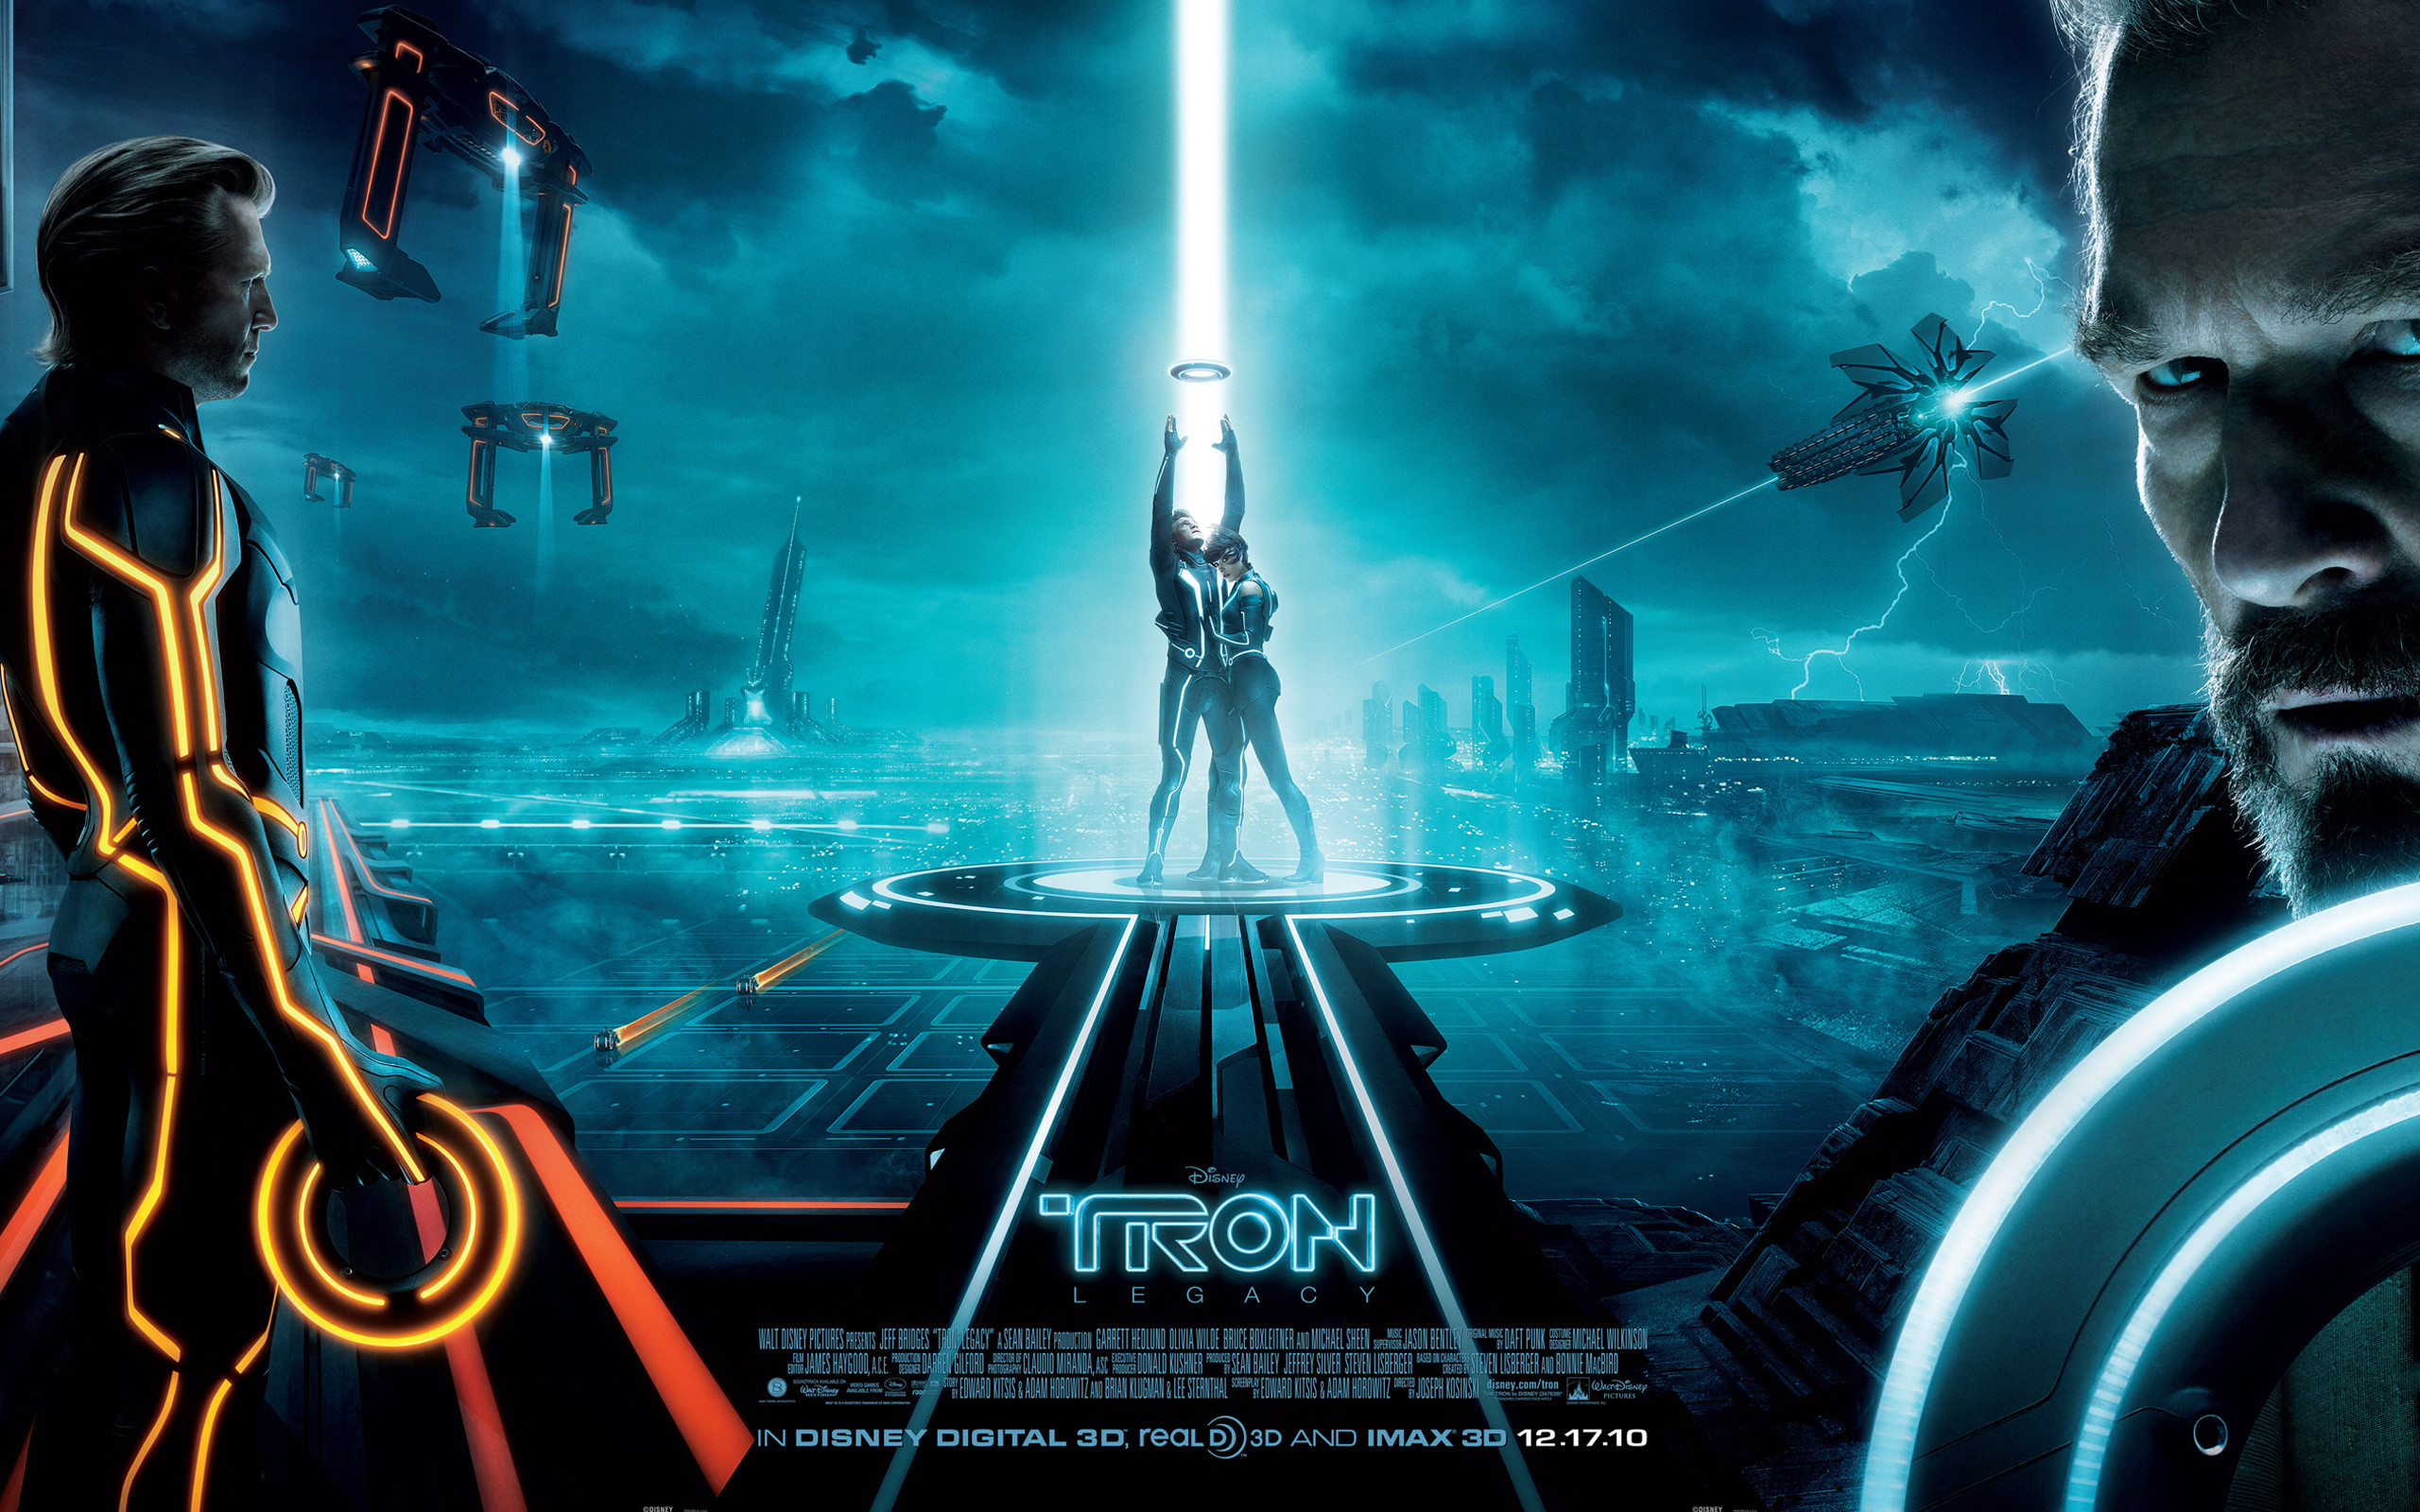 Wallpaper picture of the main characters from Disney's Tron: Legacy movie:  Clu, Sam Flynn, Quorra and Kevin Flynn. See all Tron: